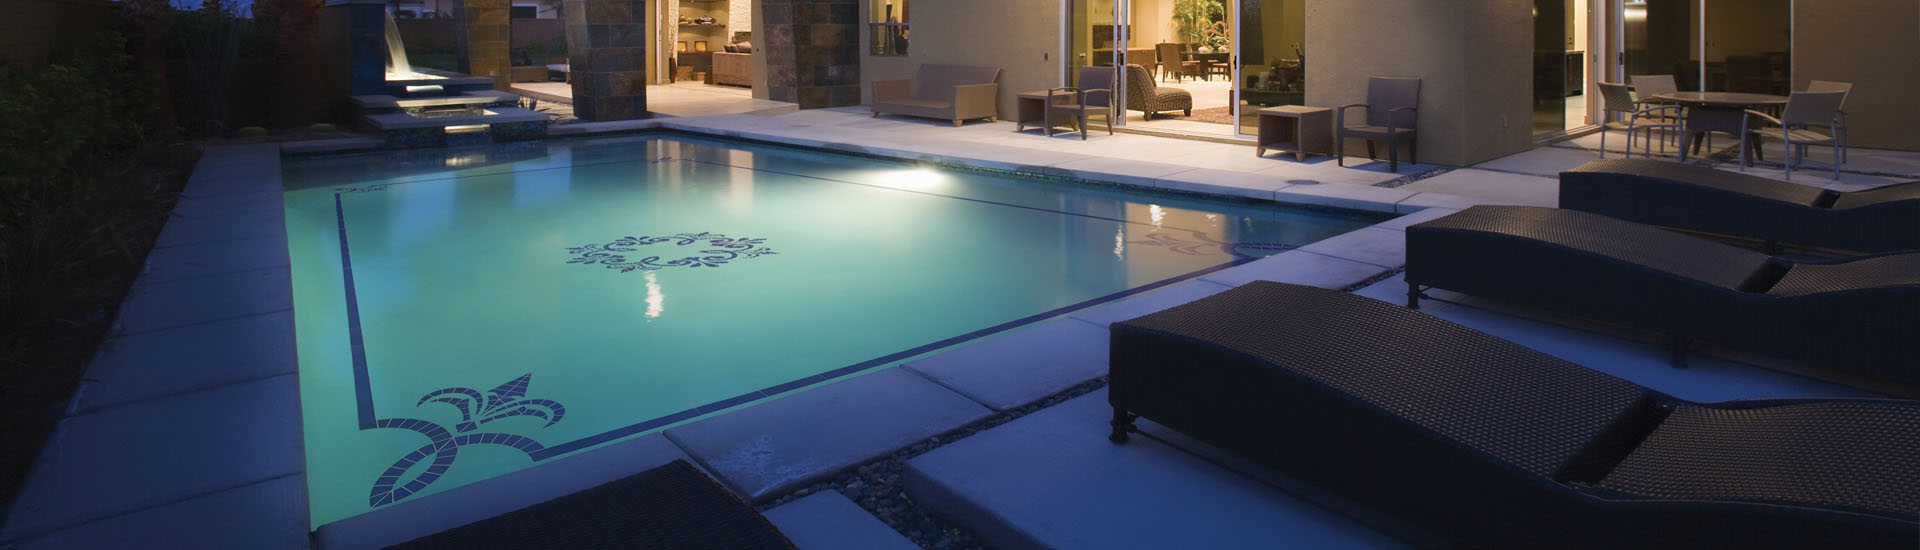 Artistry In Mosaics - Distinctive Tile Designs for Your Pool ...